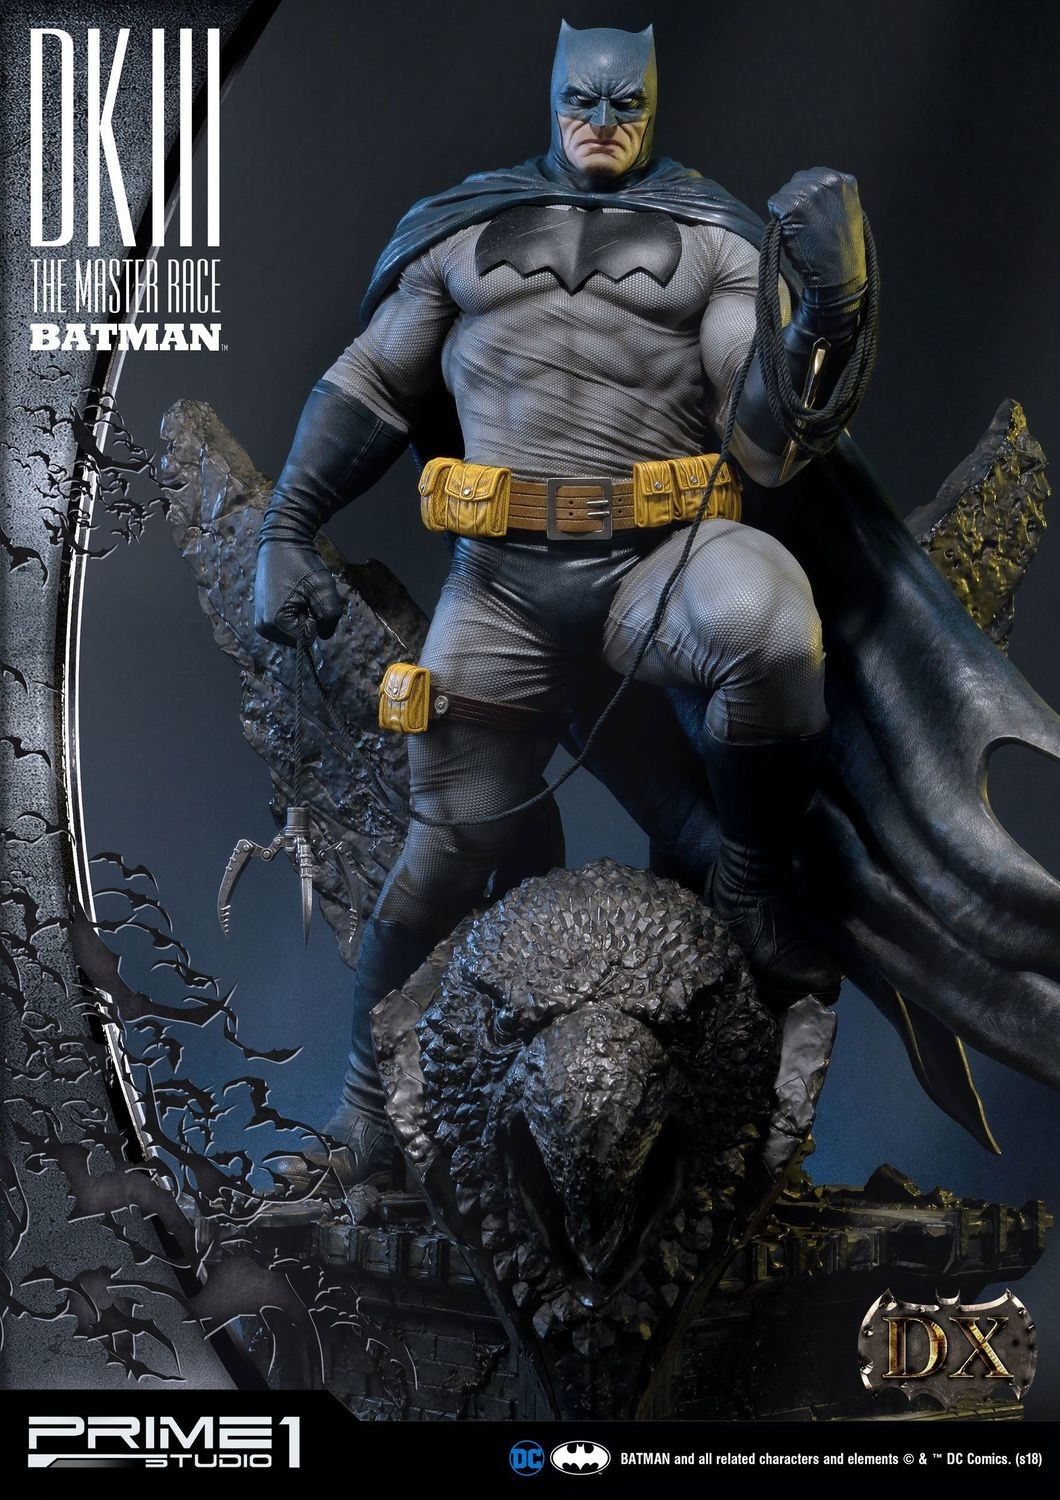 Prime 1 1:3 Scale Batman from The Dark Knight III: The Master Race (Dlx Ver)